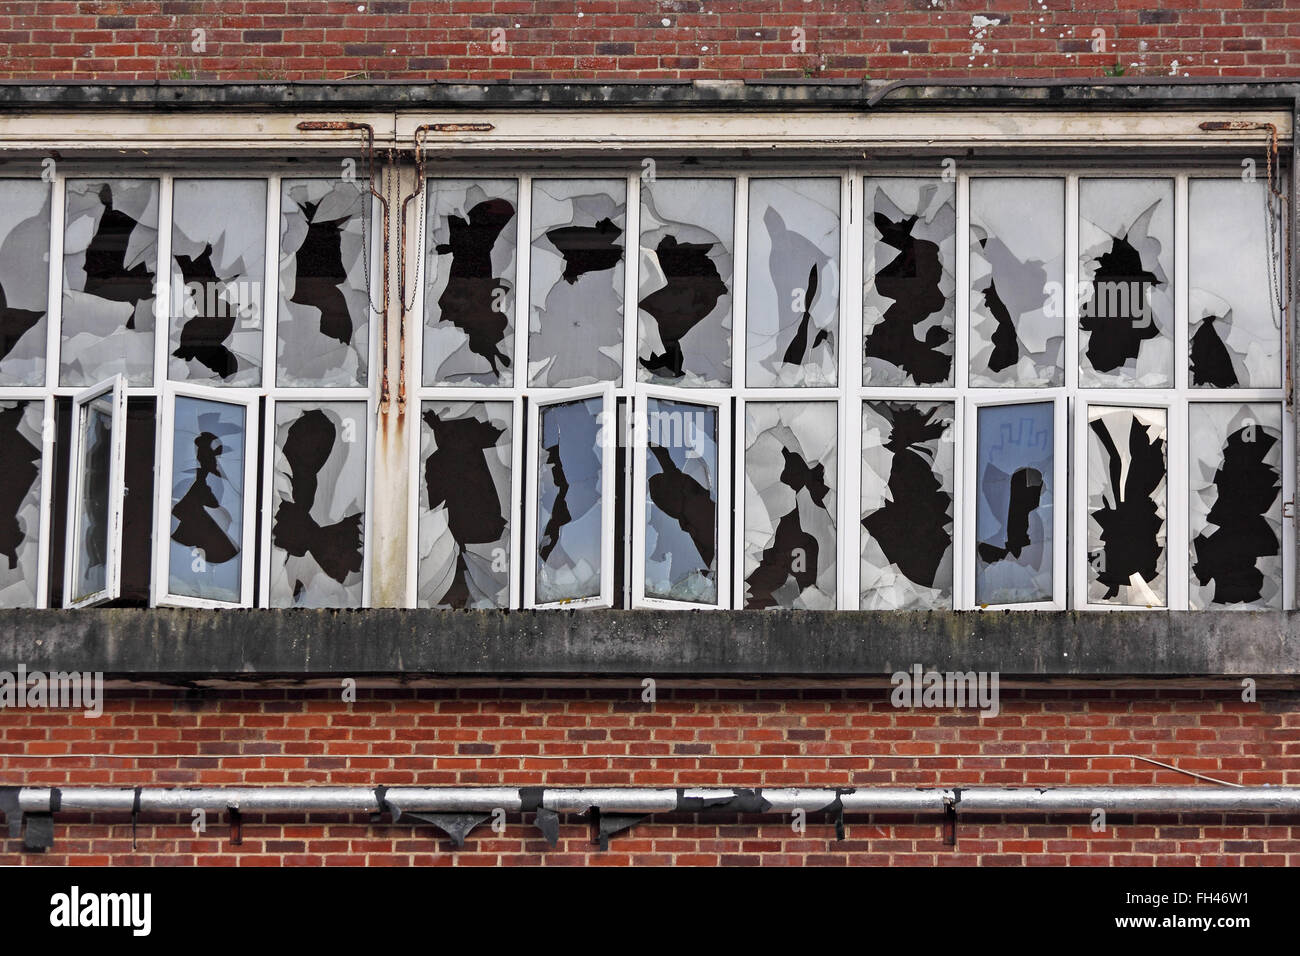 Arrays of shattered window panes in a disused industrial premises UK - Stock Image